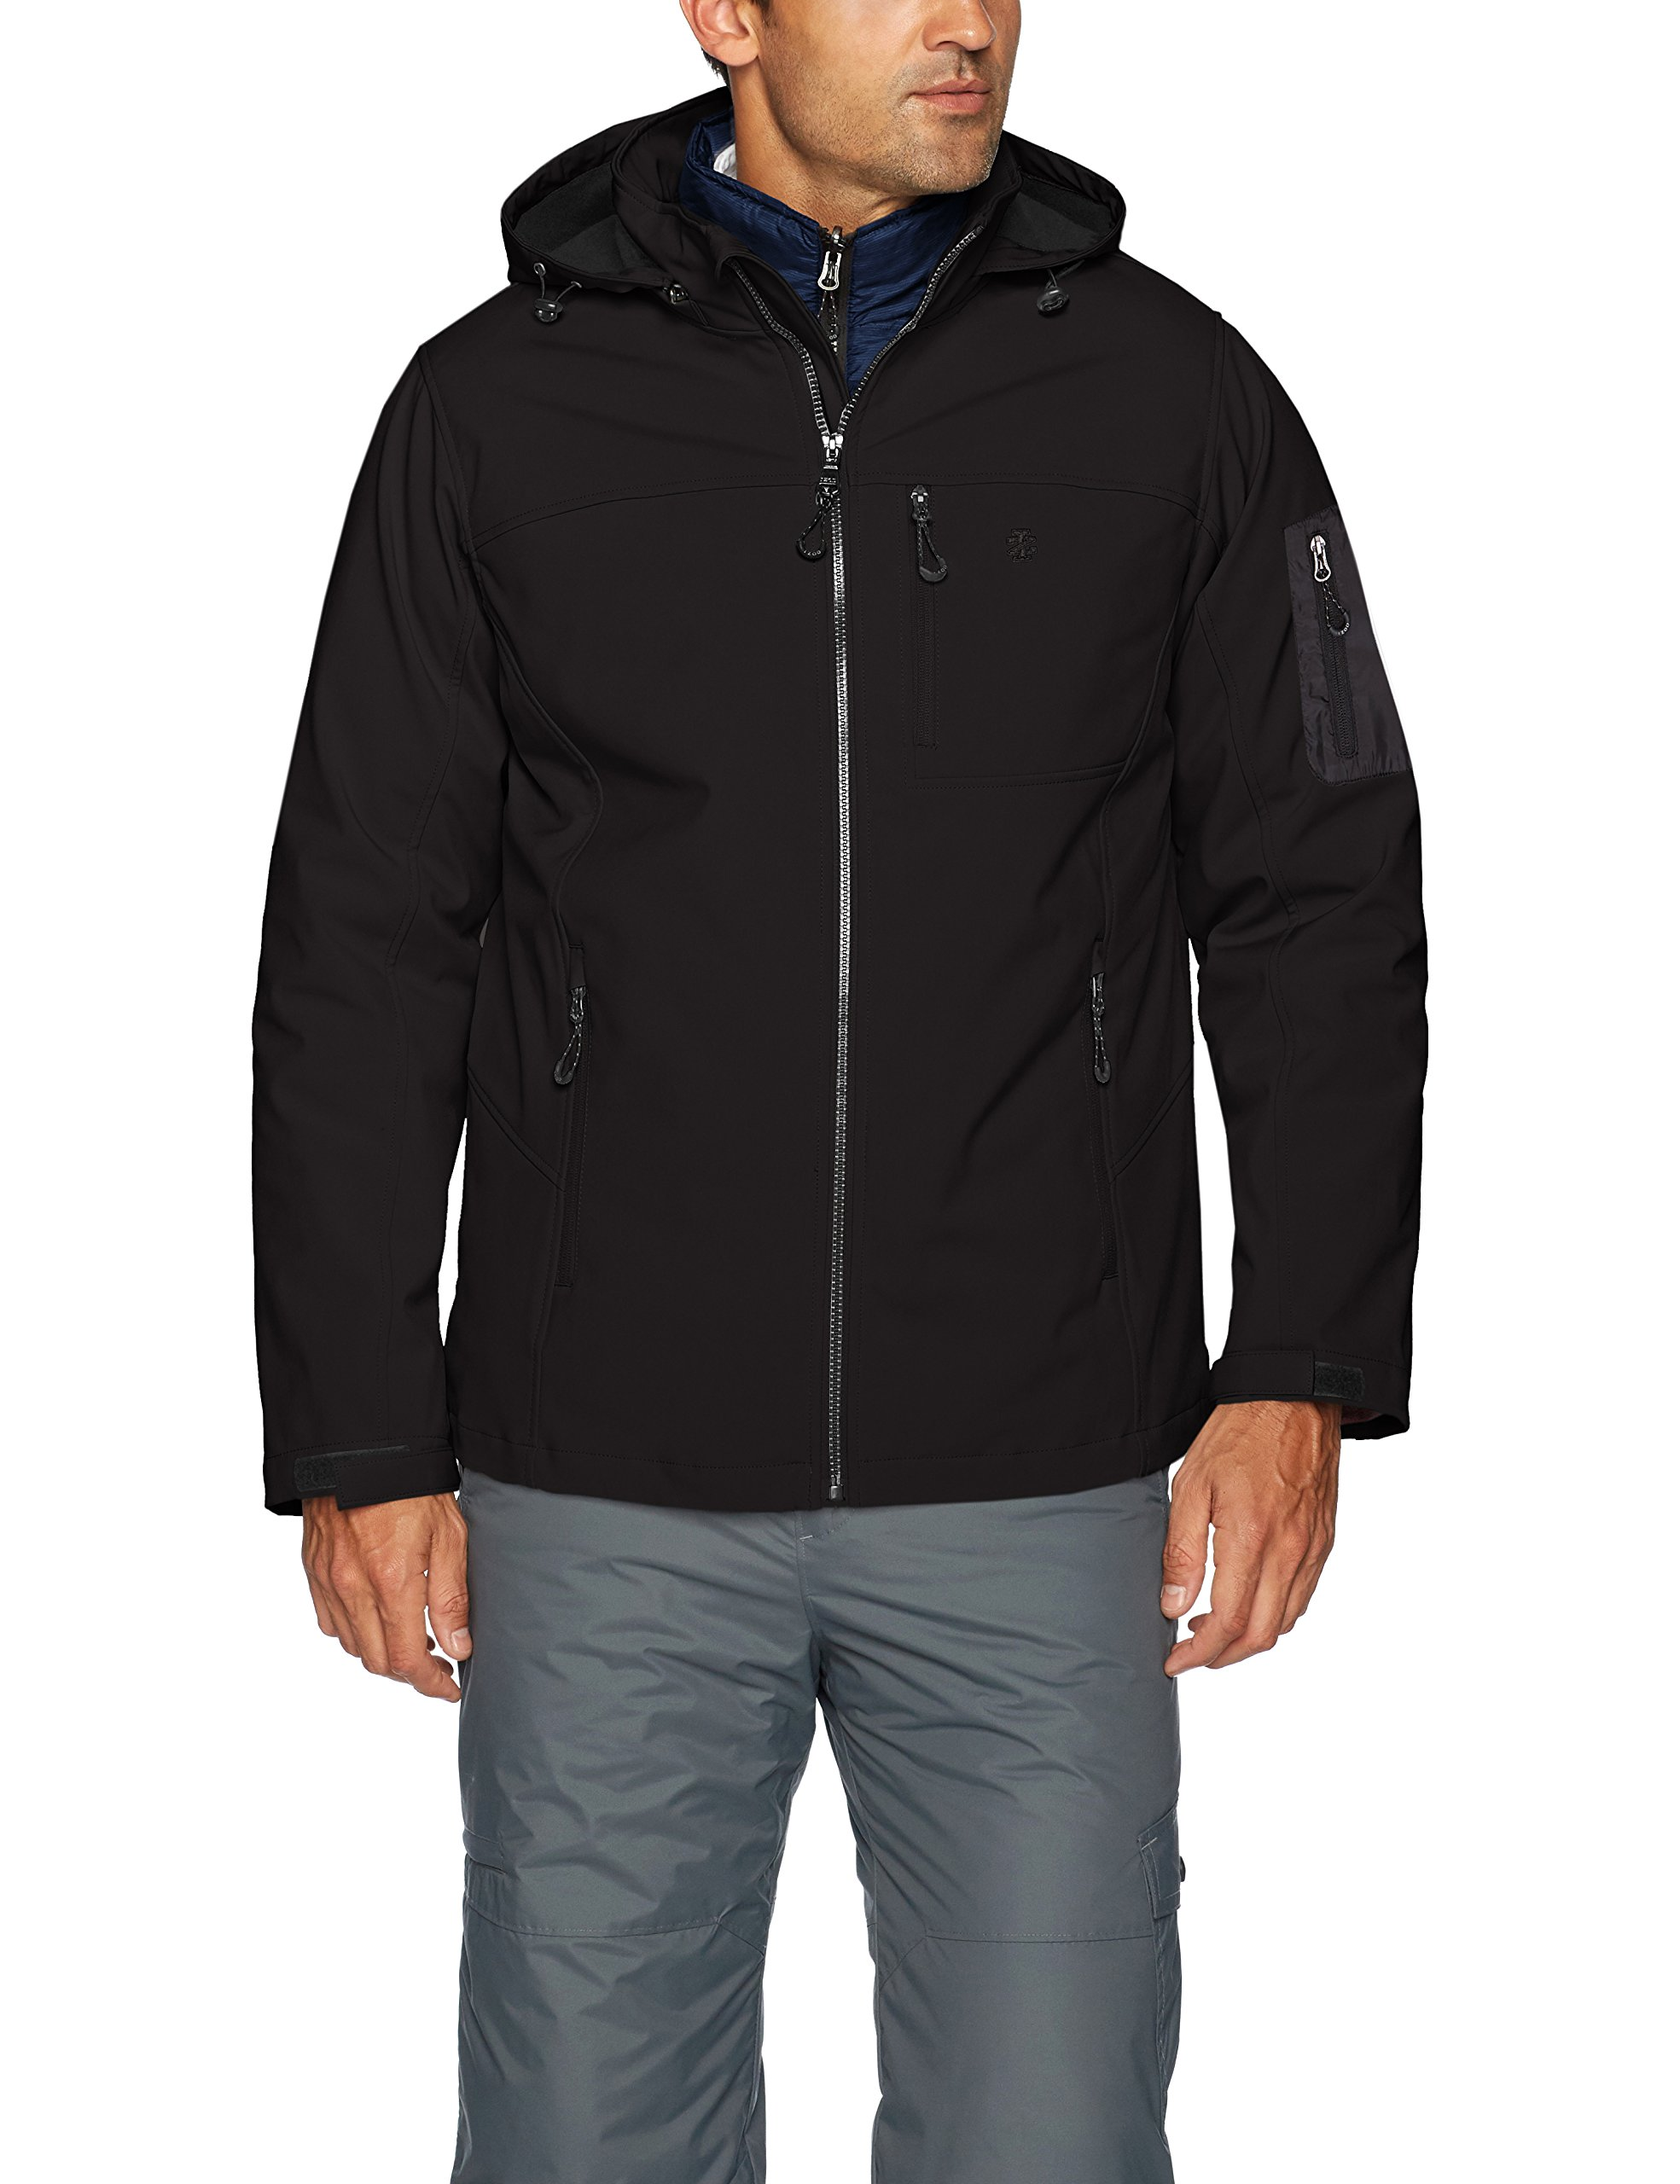 IZOD Men's 3-in-1 Soft-Shell Systems Jacket, Black, M by IZOD